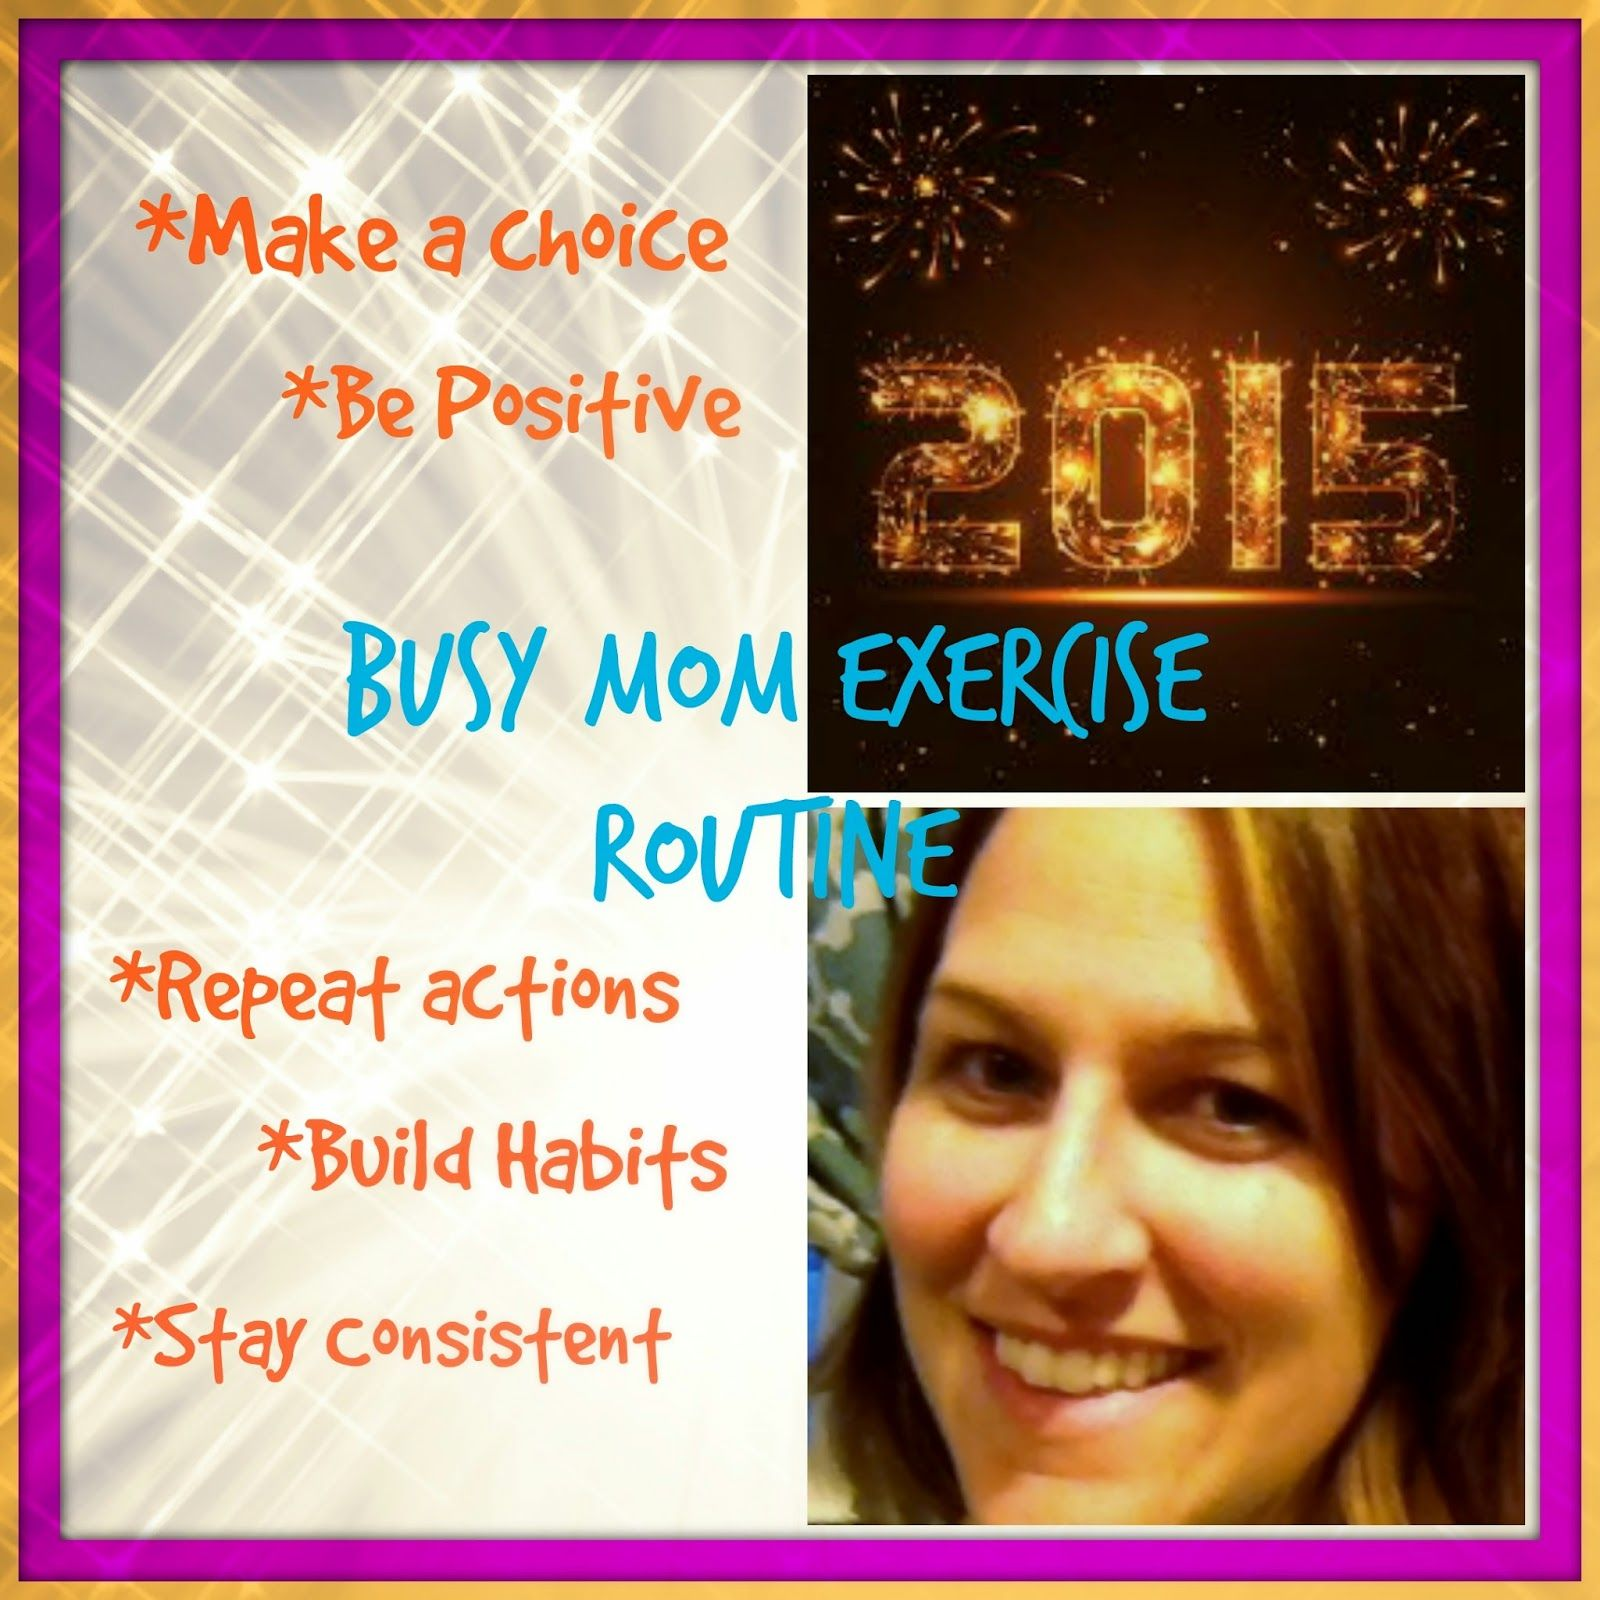 Busy mom exercise routine workout routine busy mom